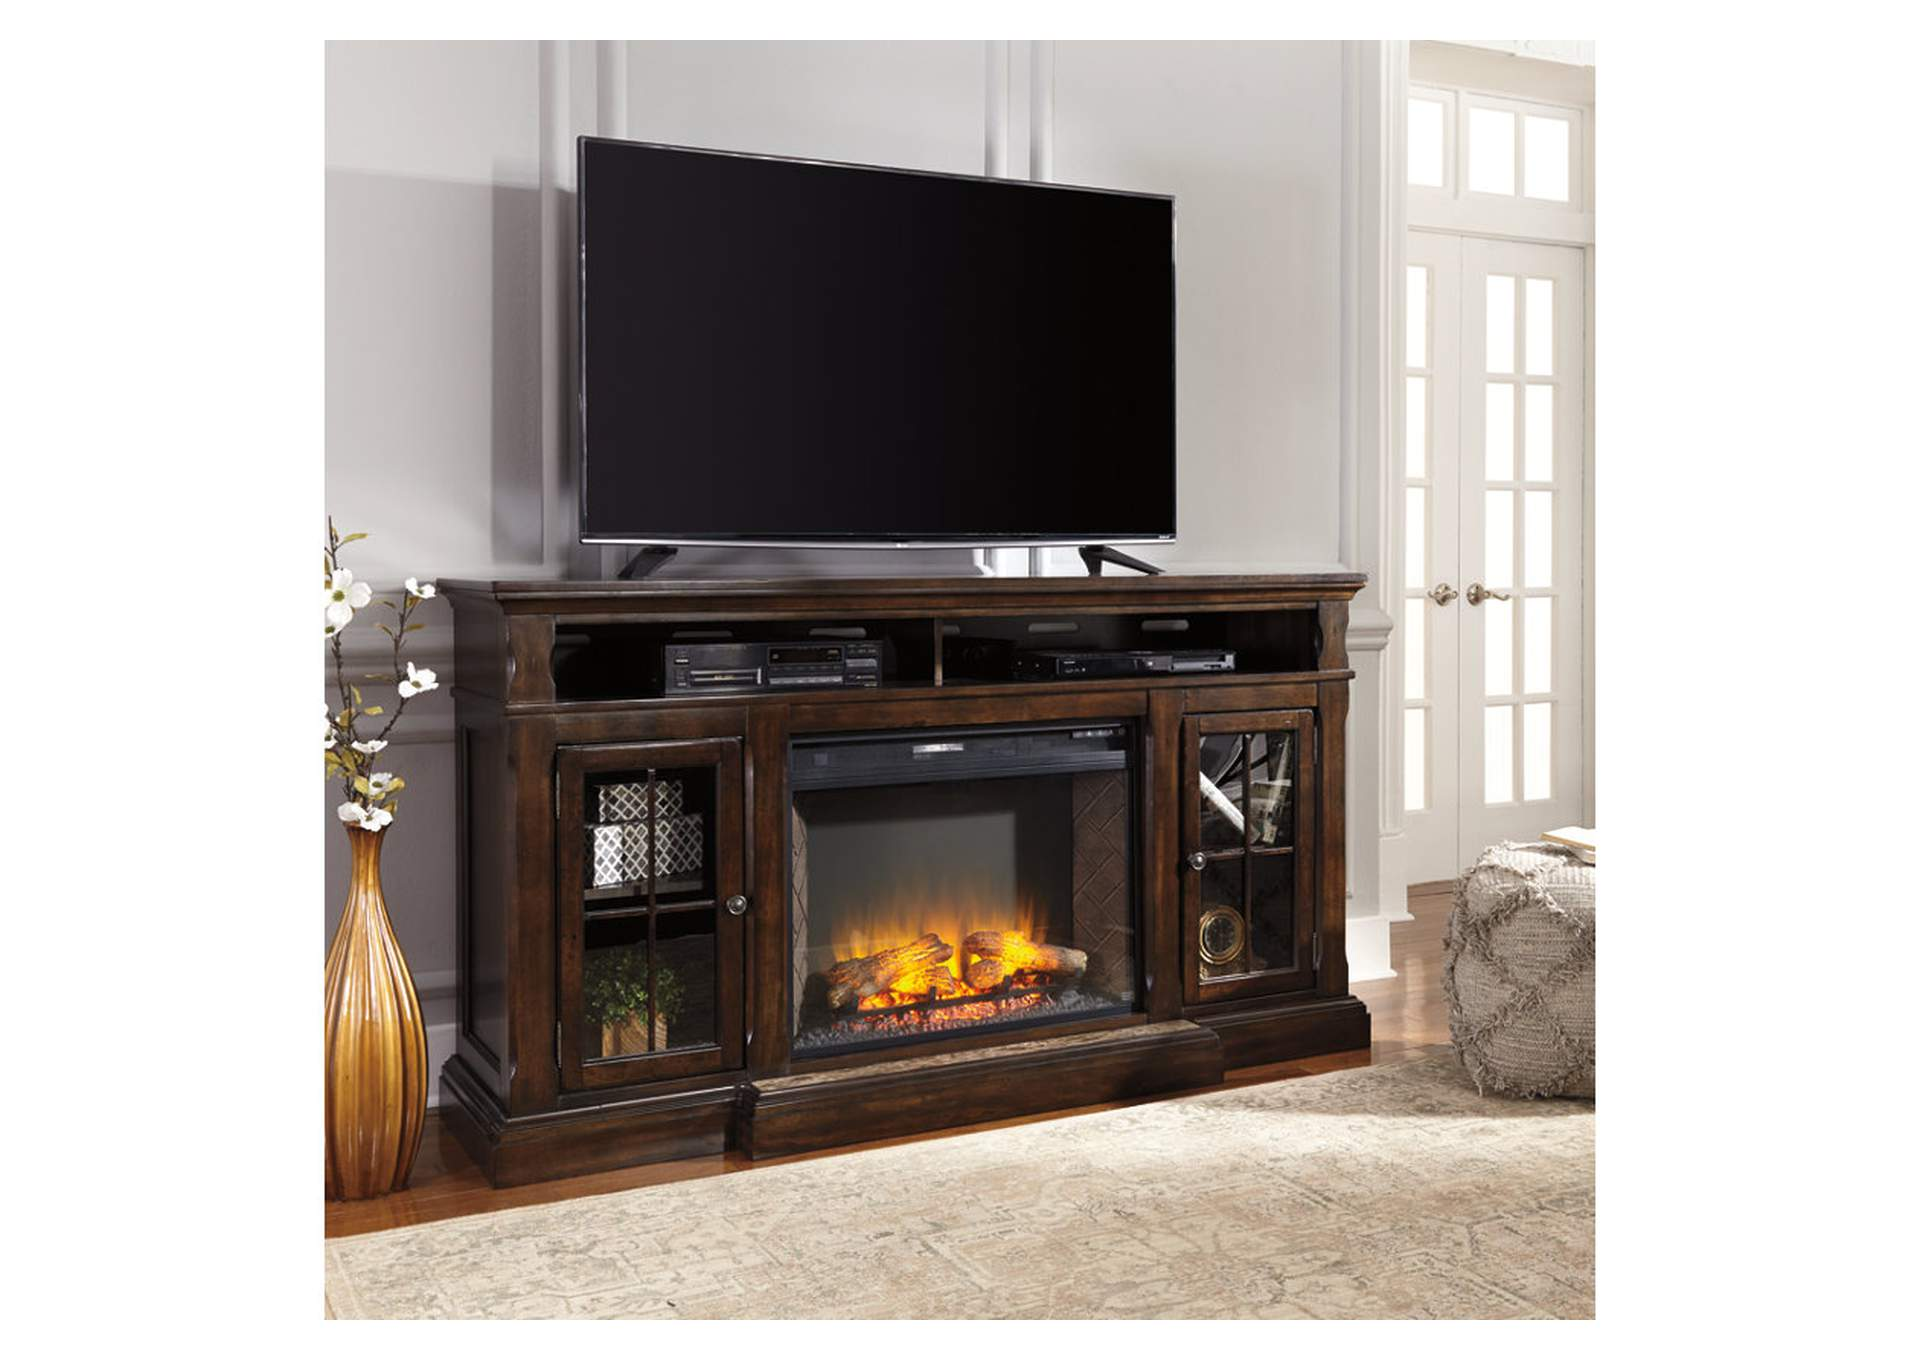 Roddinton XL TV Stand w/Fireplace,Signature Design By Ashley